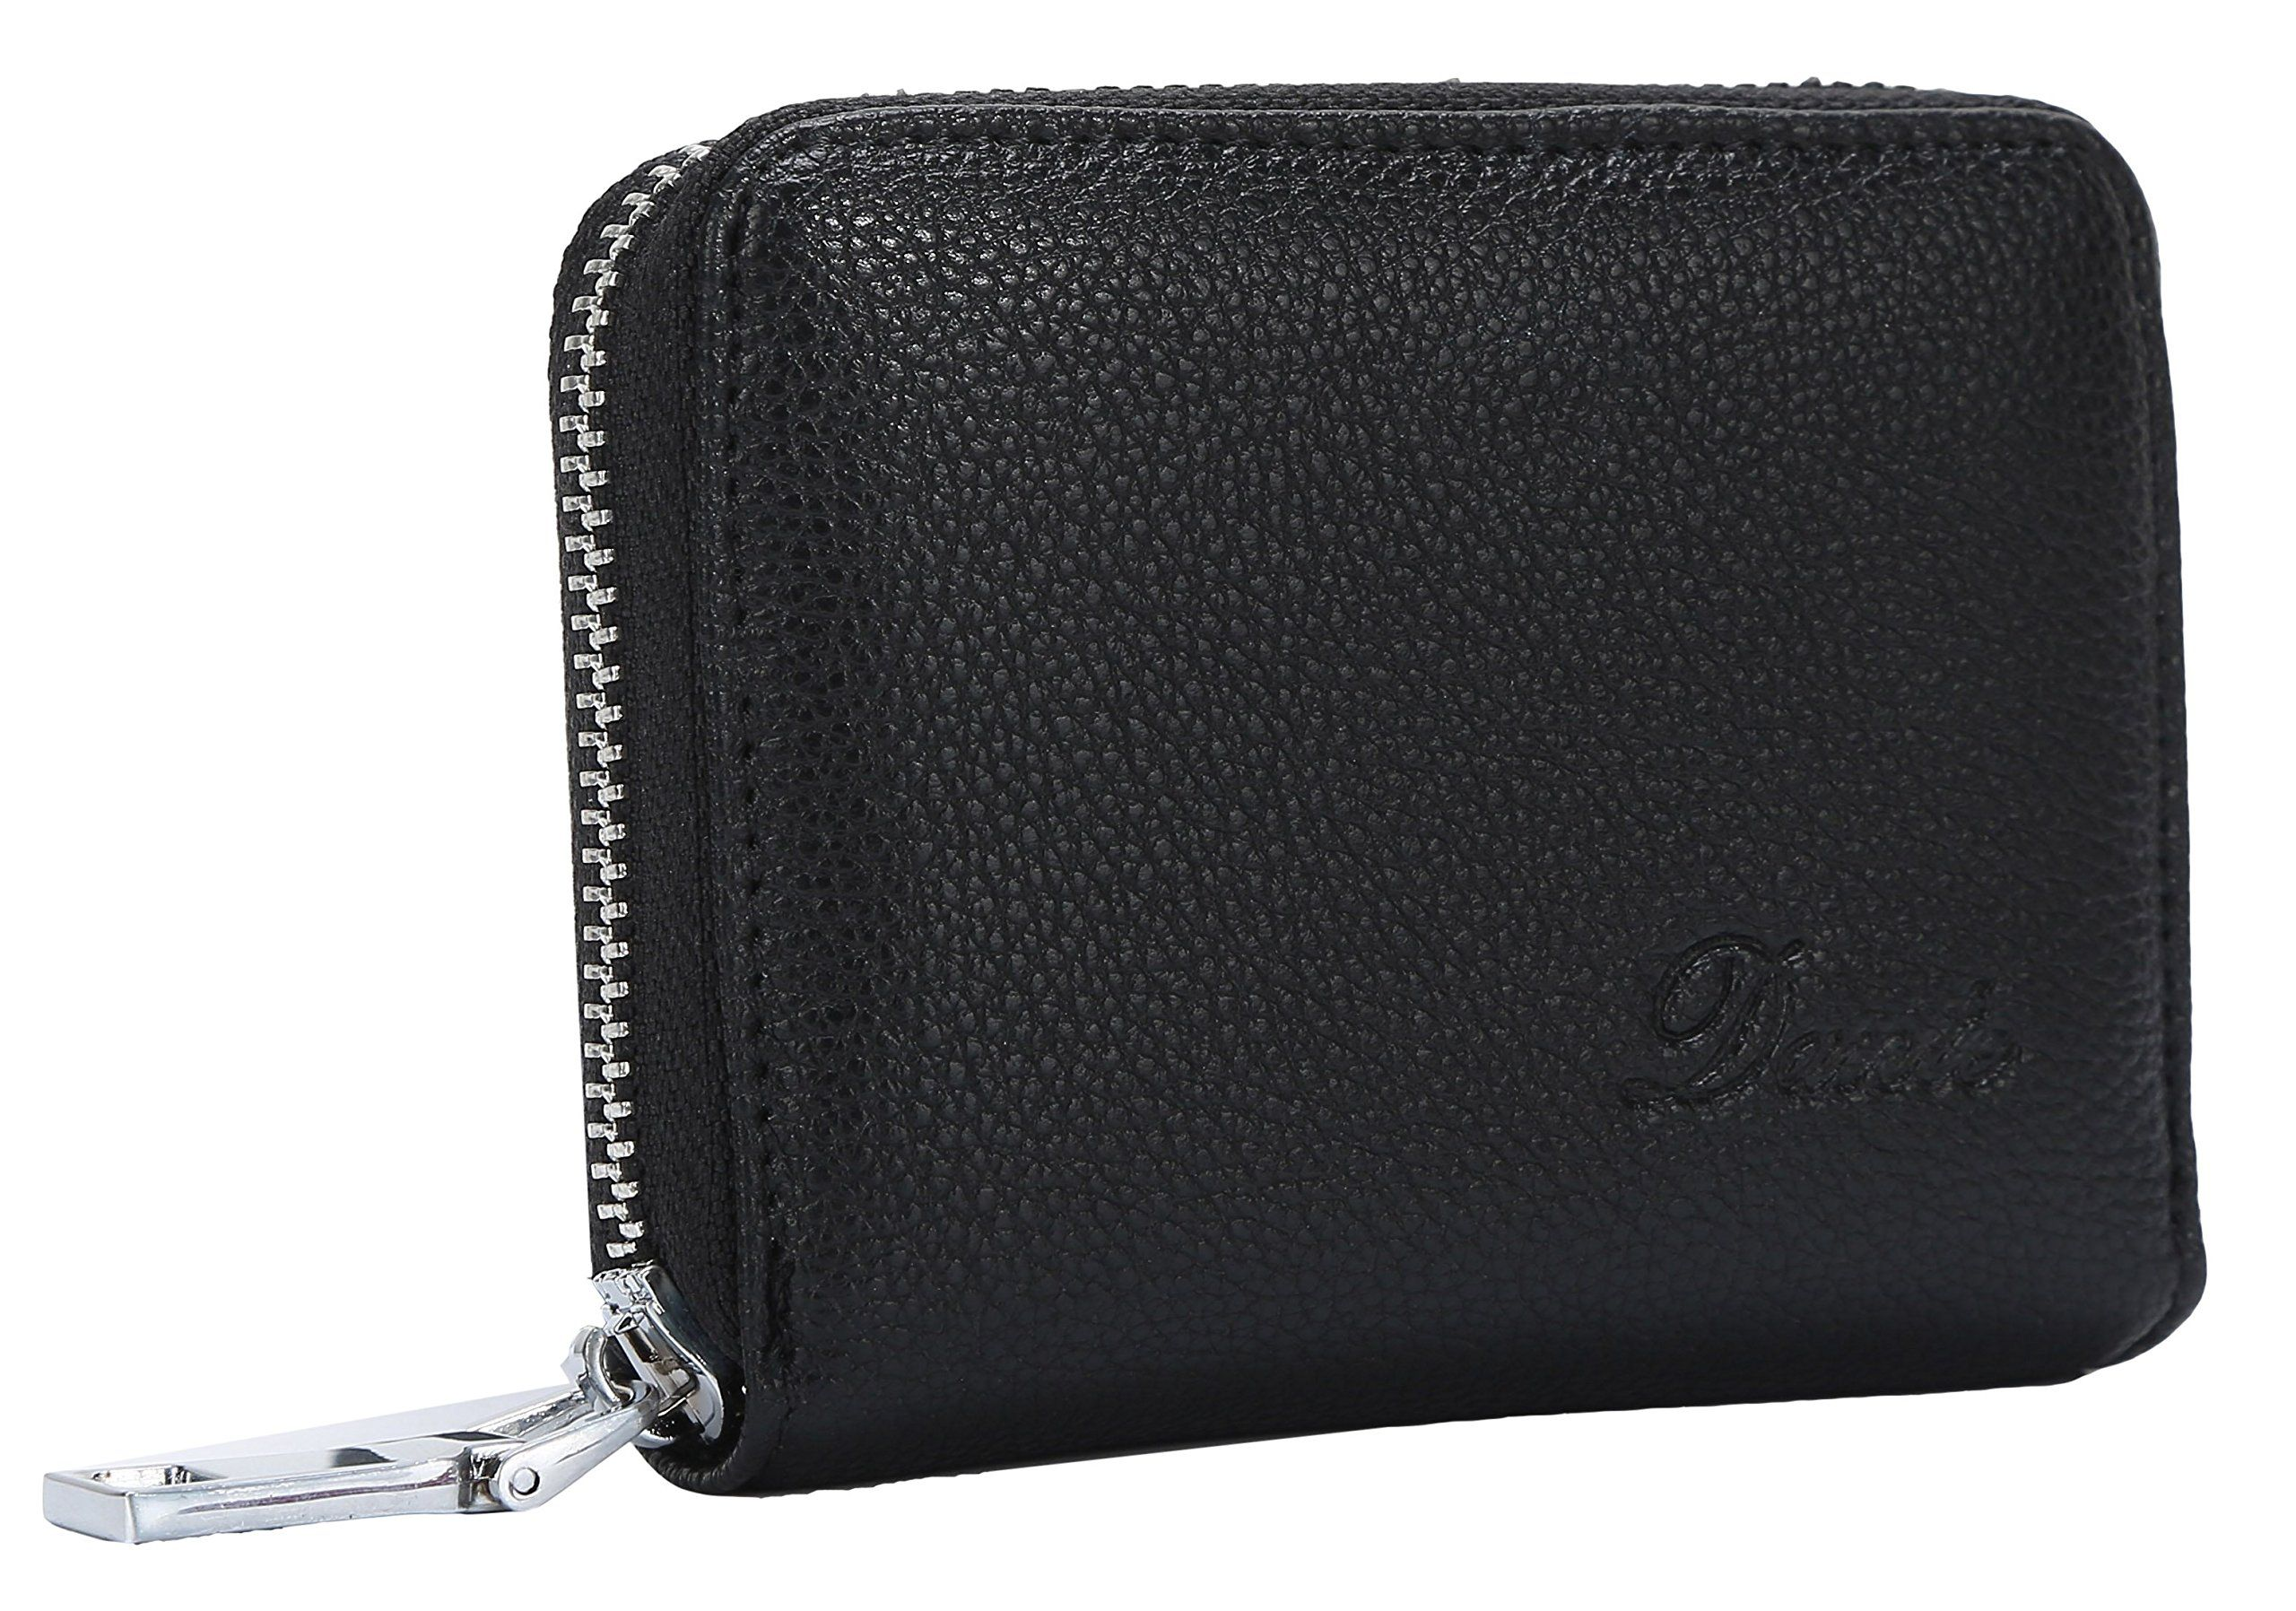 Dante rfid blocking leather credit card wallet for women